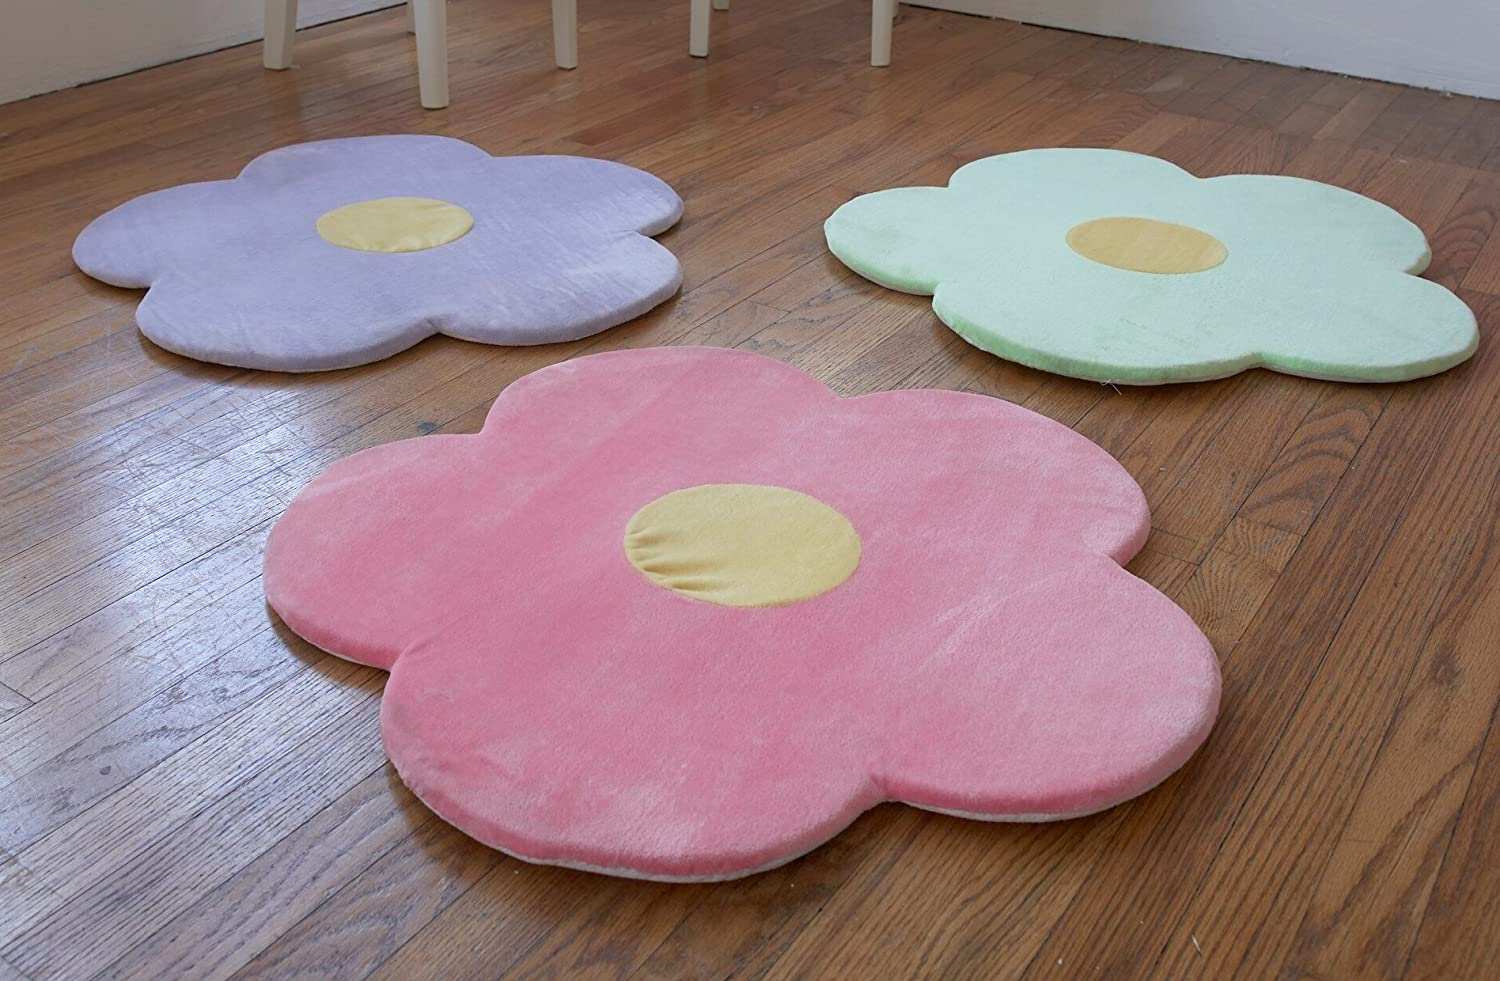 playroom play and wool area red rug childrens baby kids rugs boys girls carpets outdoor cheap bright round large bedroom yellow floor